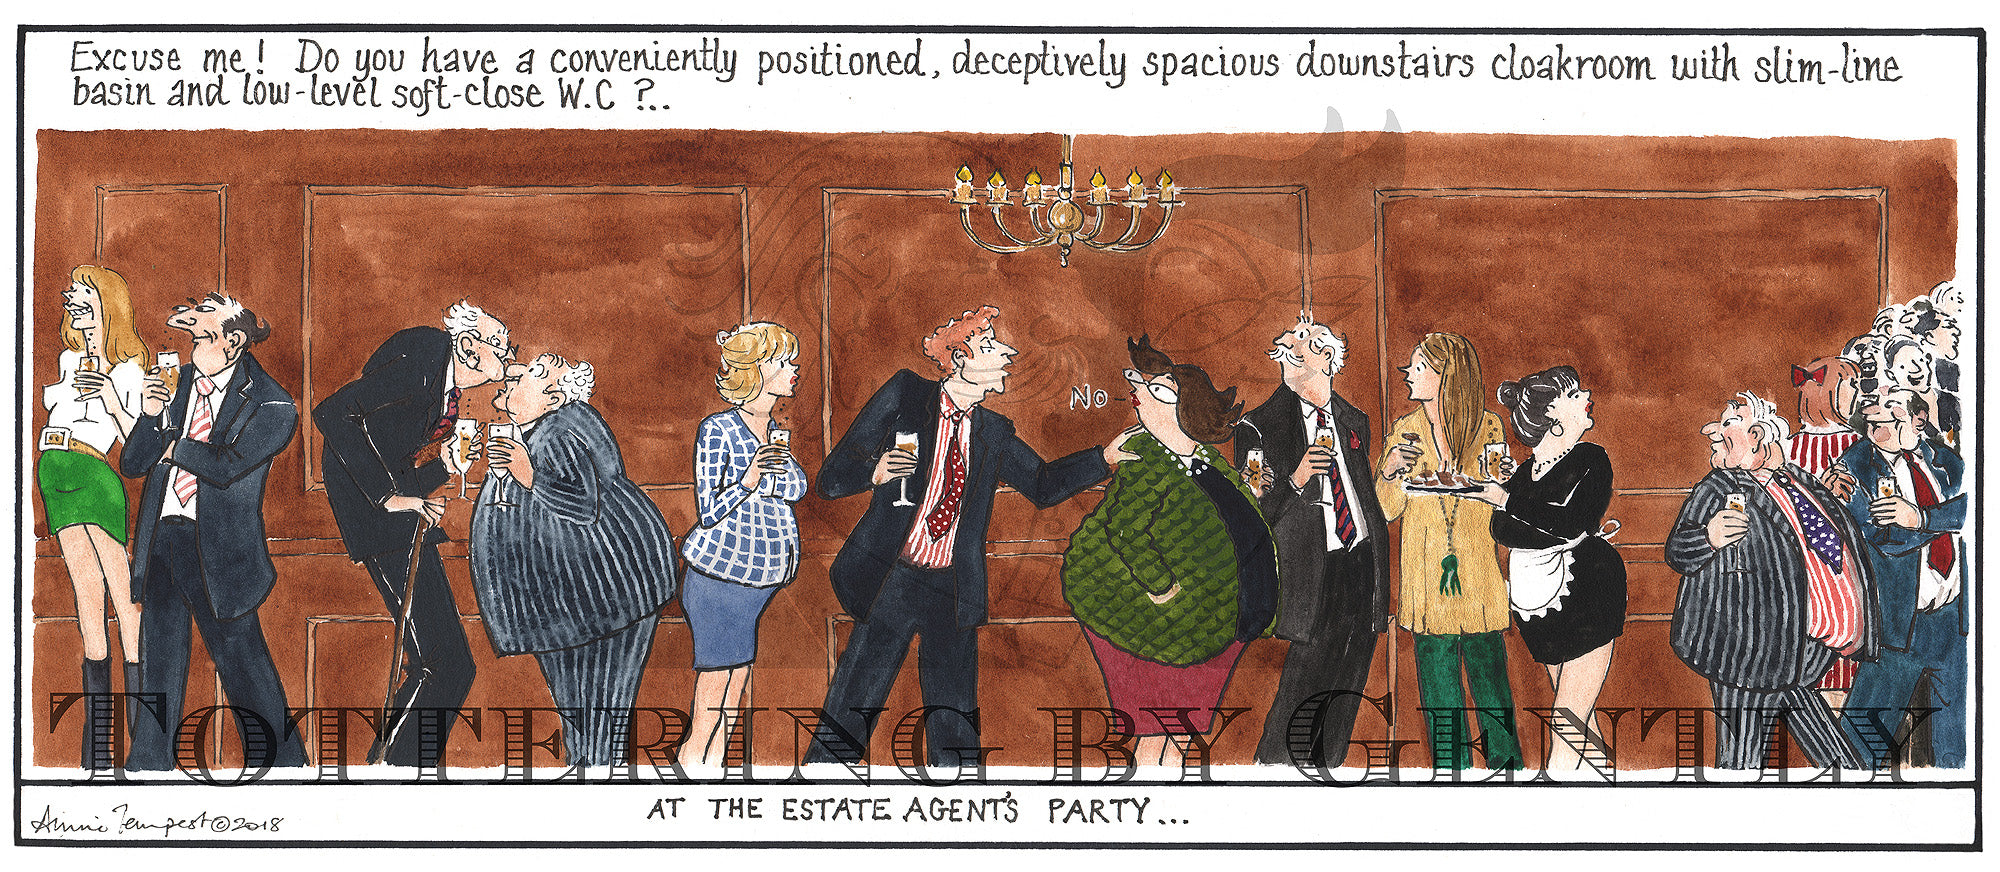 At the Estate Agents Party... (CL1285)